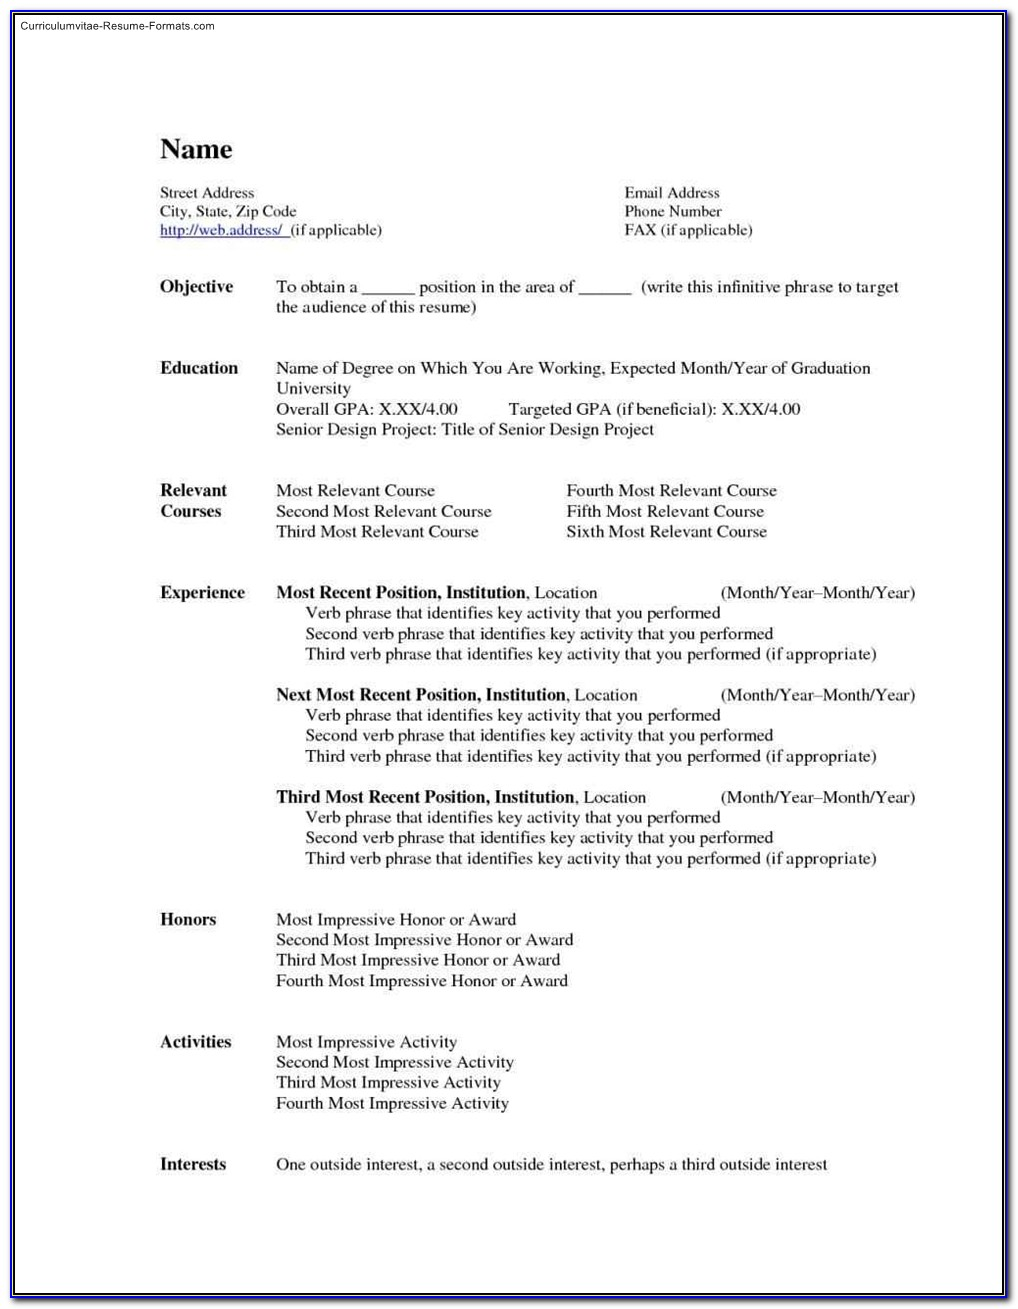 Where To Find Resume Templates In Microsoft Office 2010